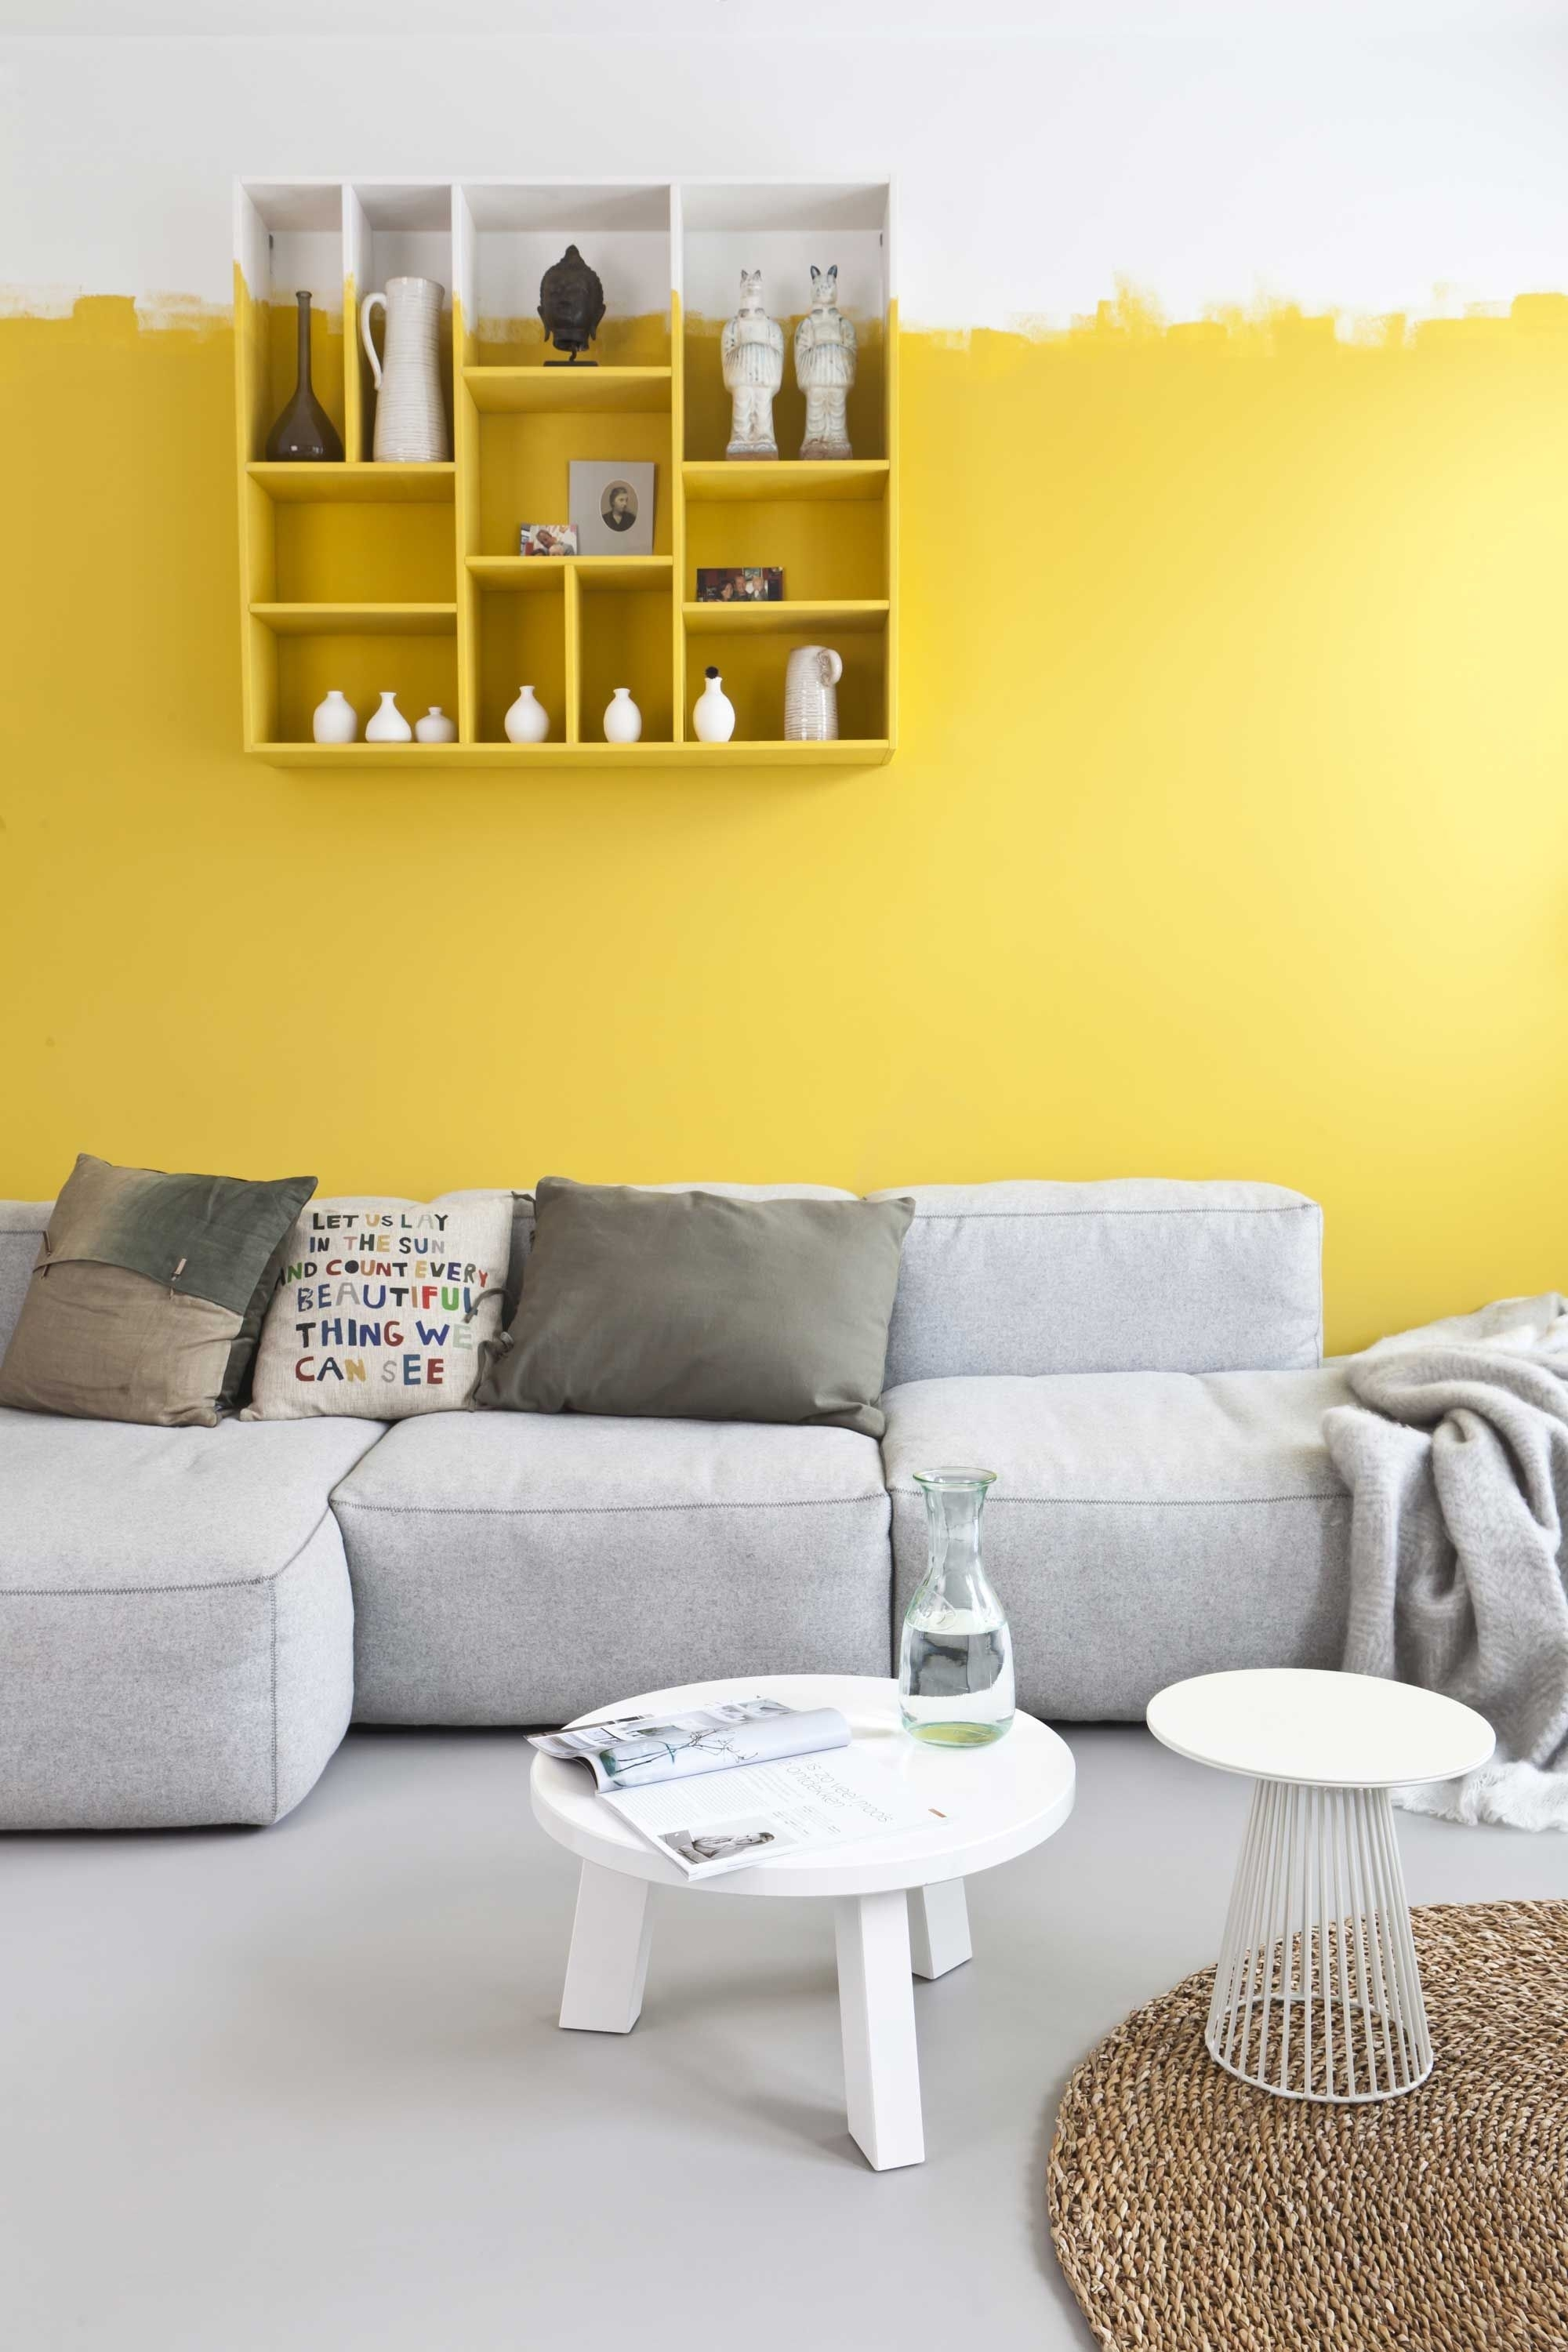 Woonkamer Haarlem Na Metamorfose Vt Wonen, Muur In Kleur Ram. Zo Within Most Recently Released Yellow Wall Accents (Gallery 4 of 15)